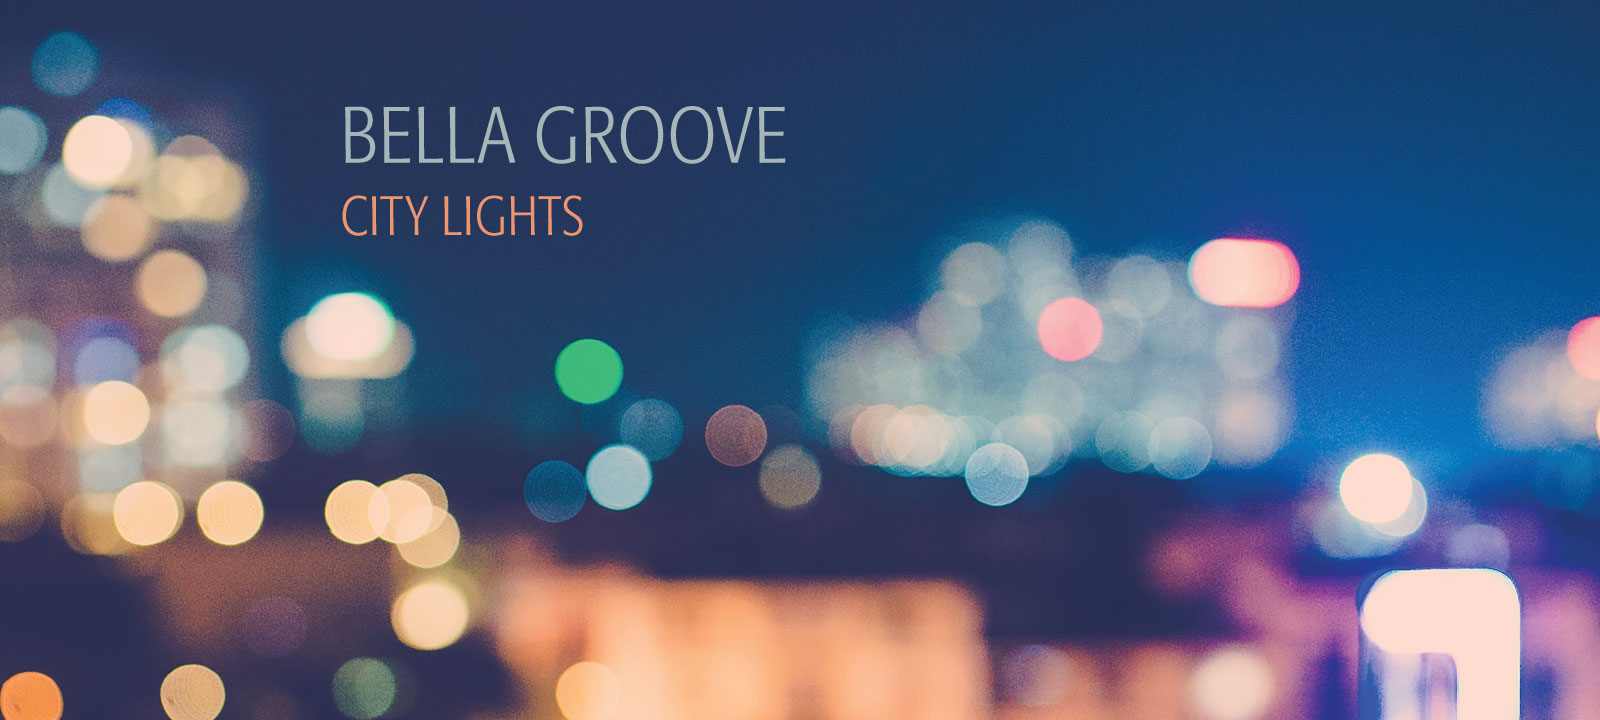 City Lights is the debut album from Bella Groove